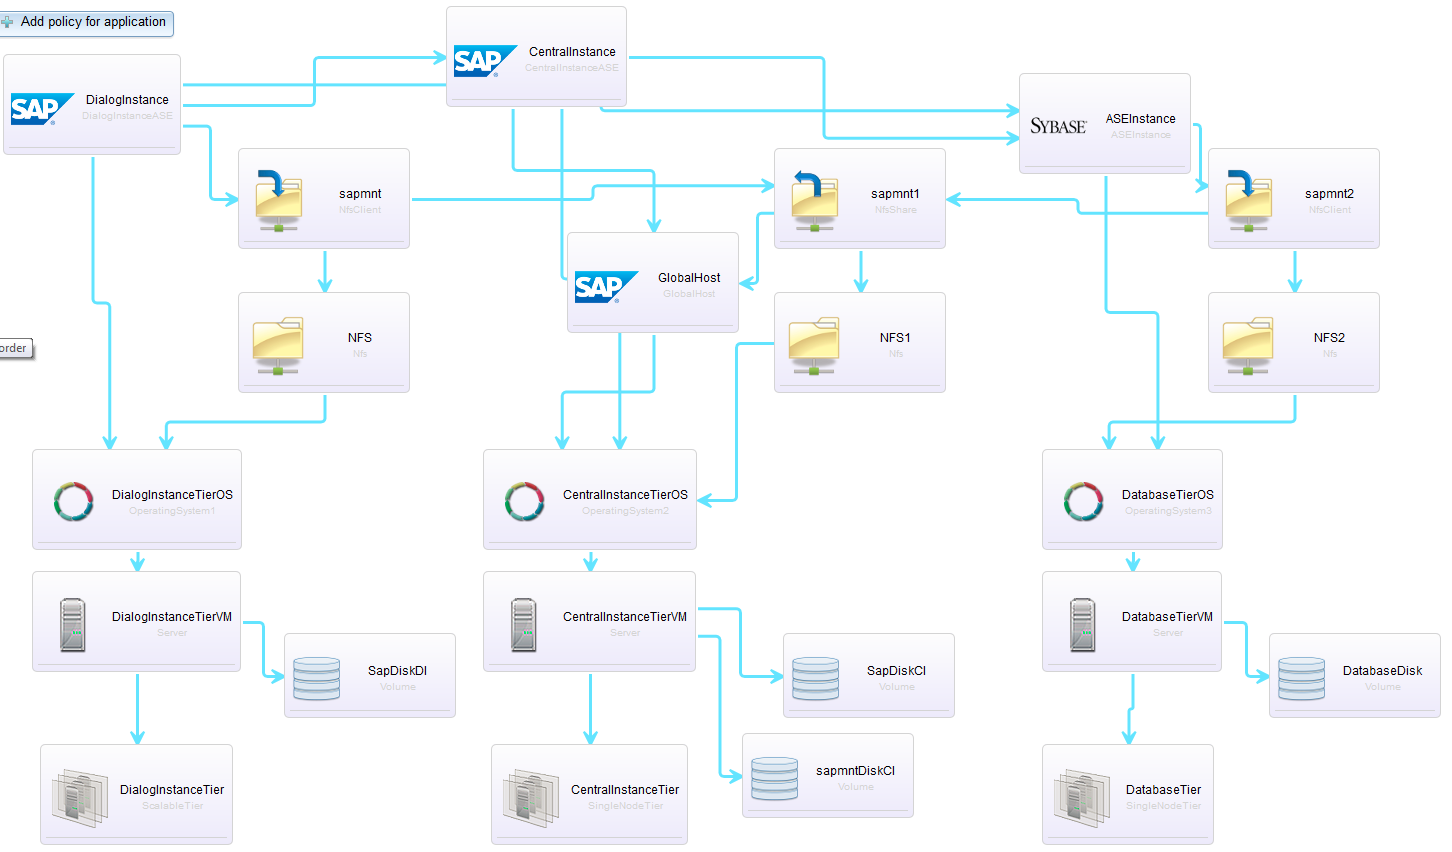 TOSA for Enterprise Workloads: SAP M ASE Interop